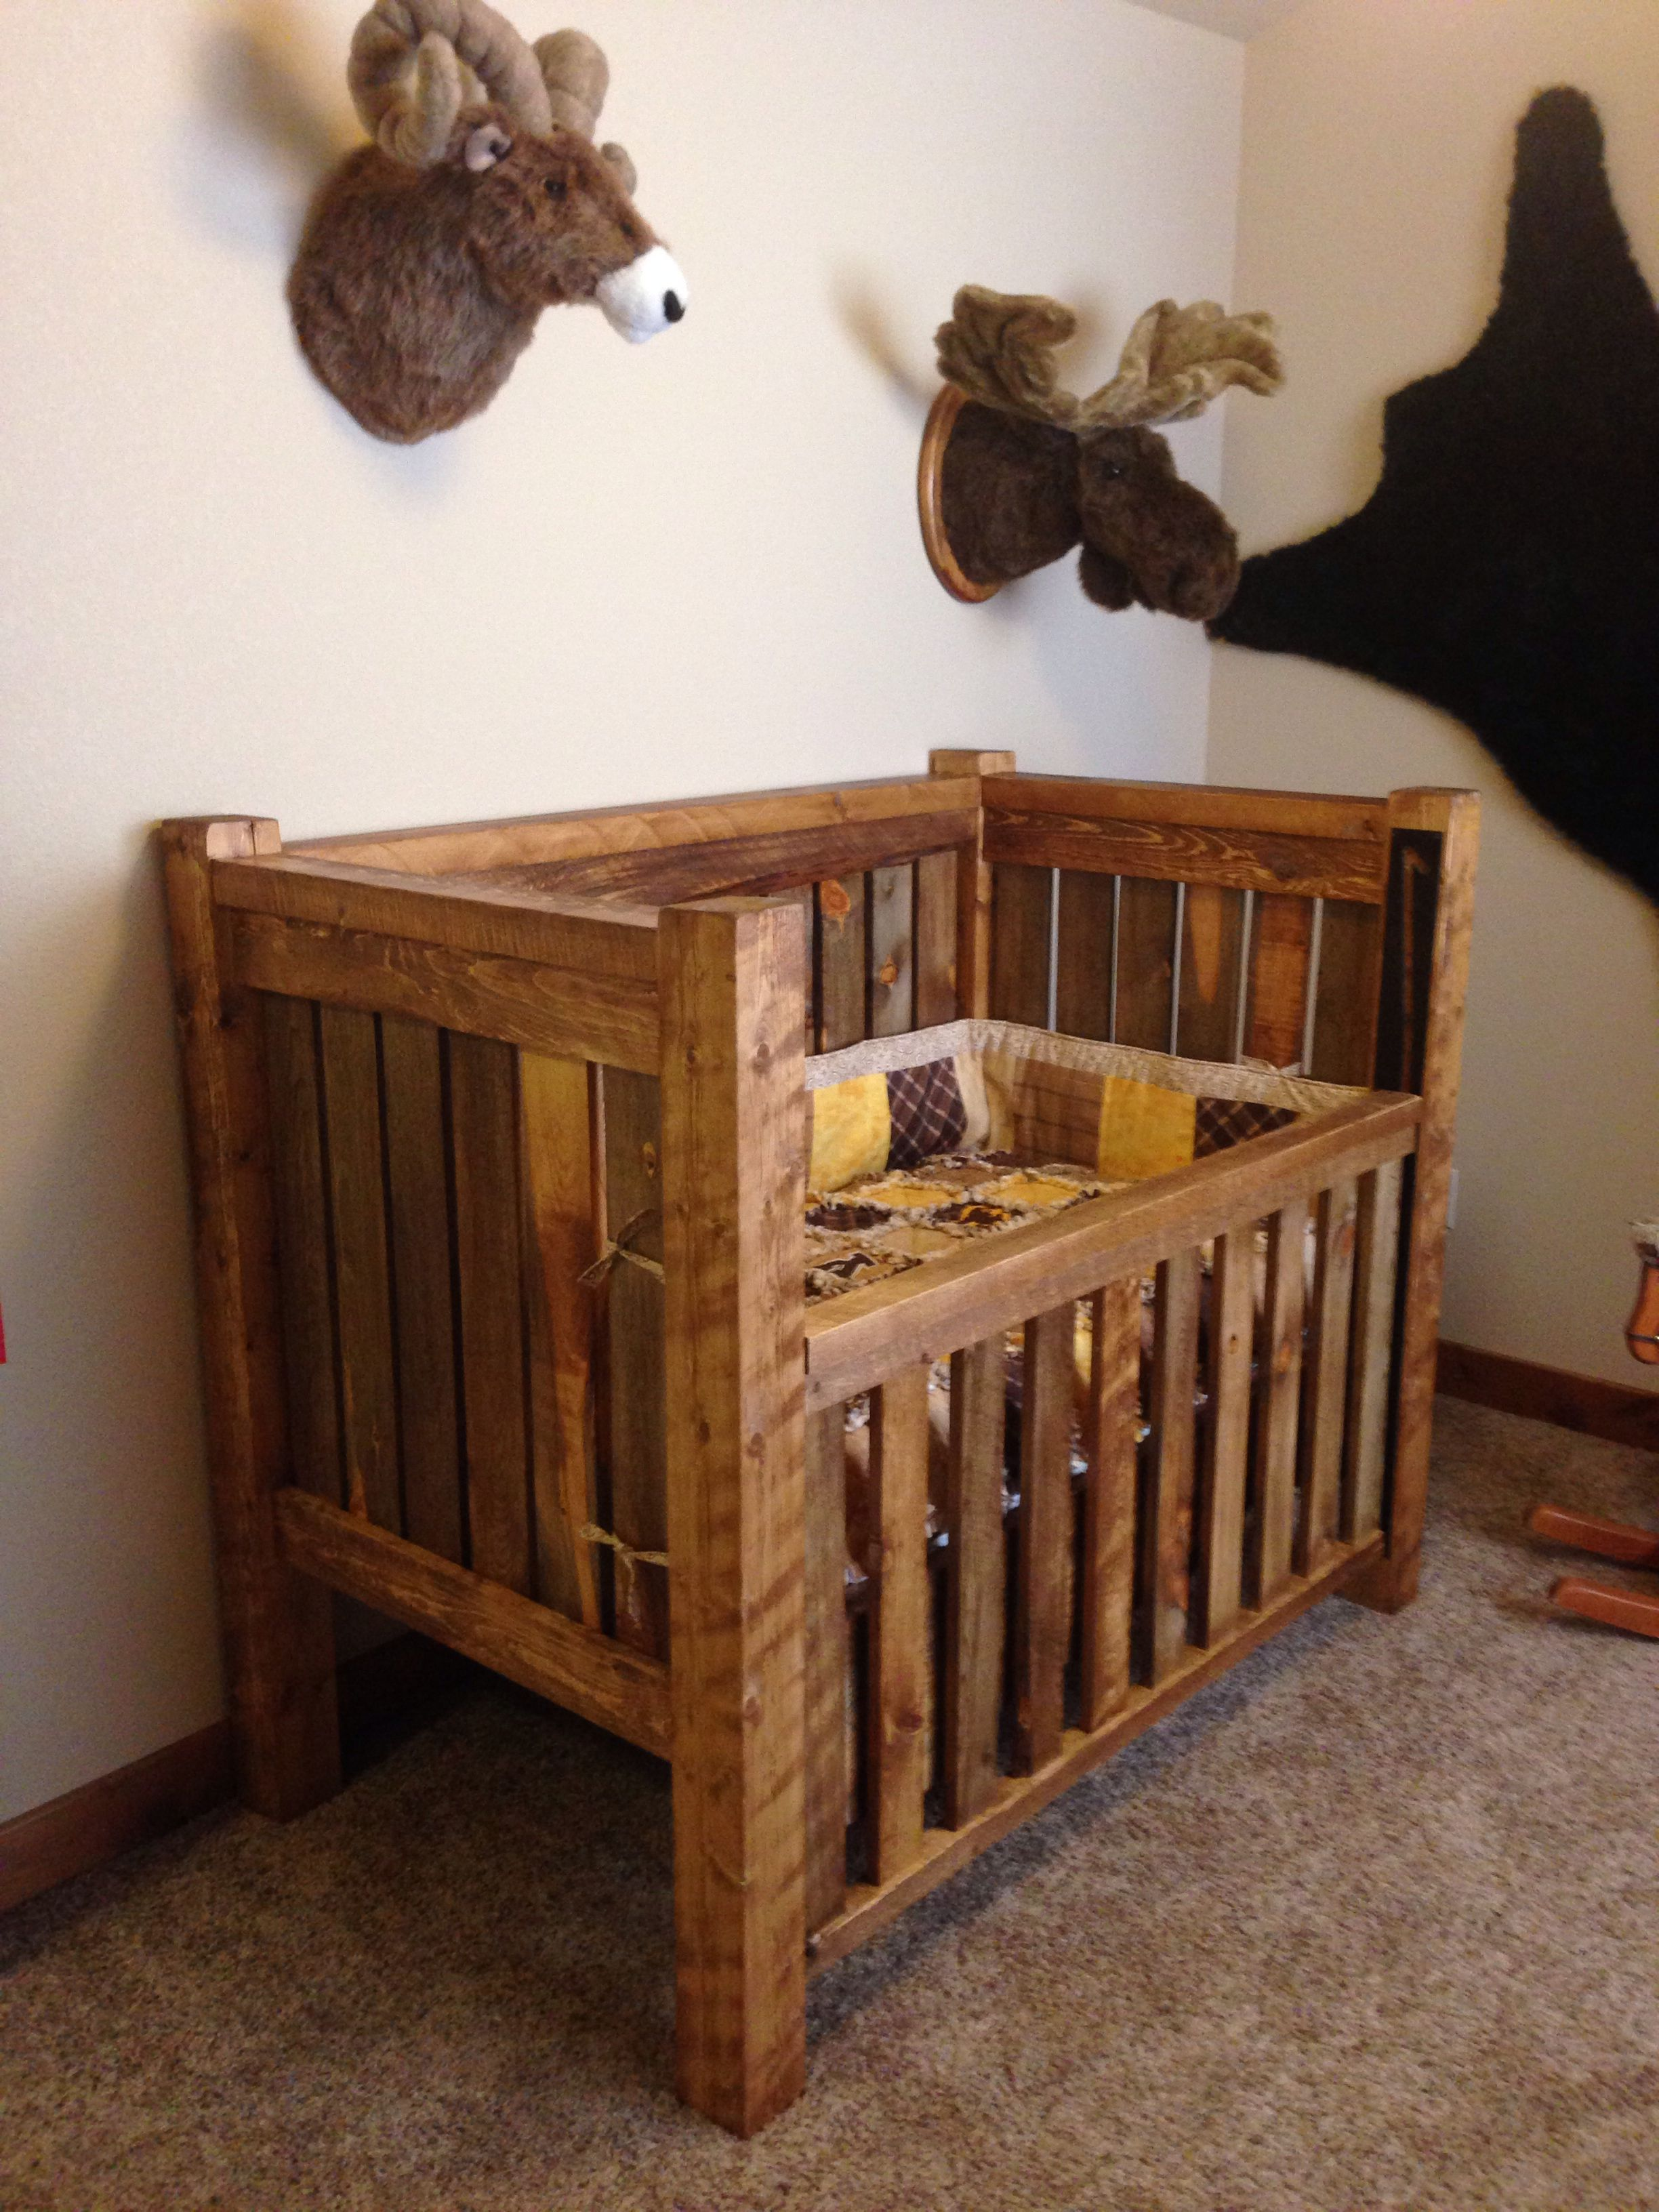 Rustic Baby Crib And Hunting Lodge Bedroom Rustic Baby Cribs